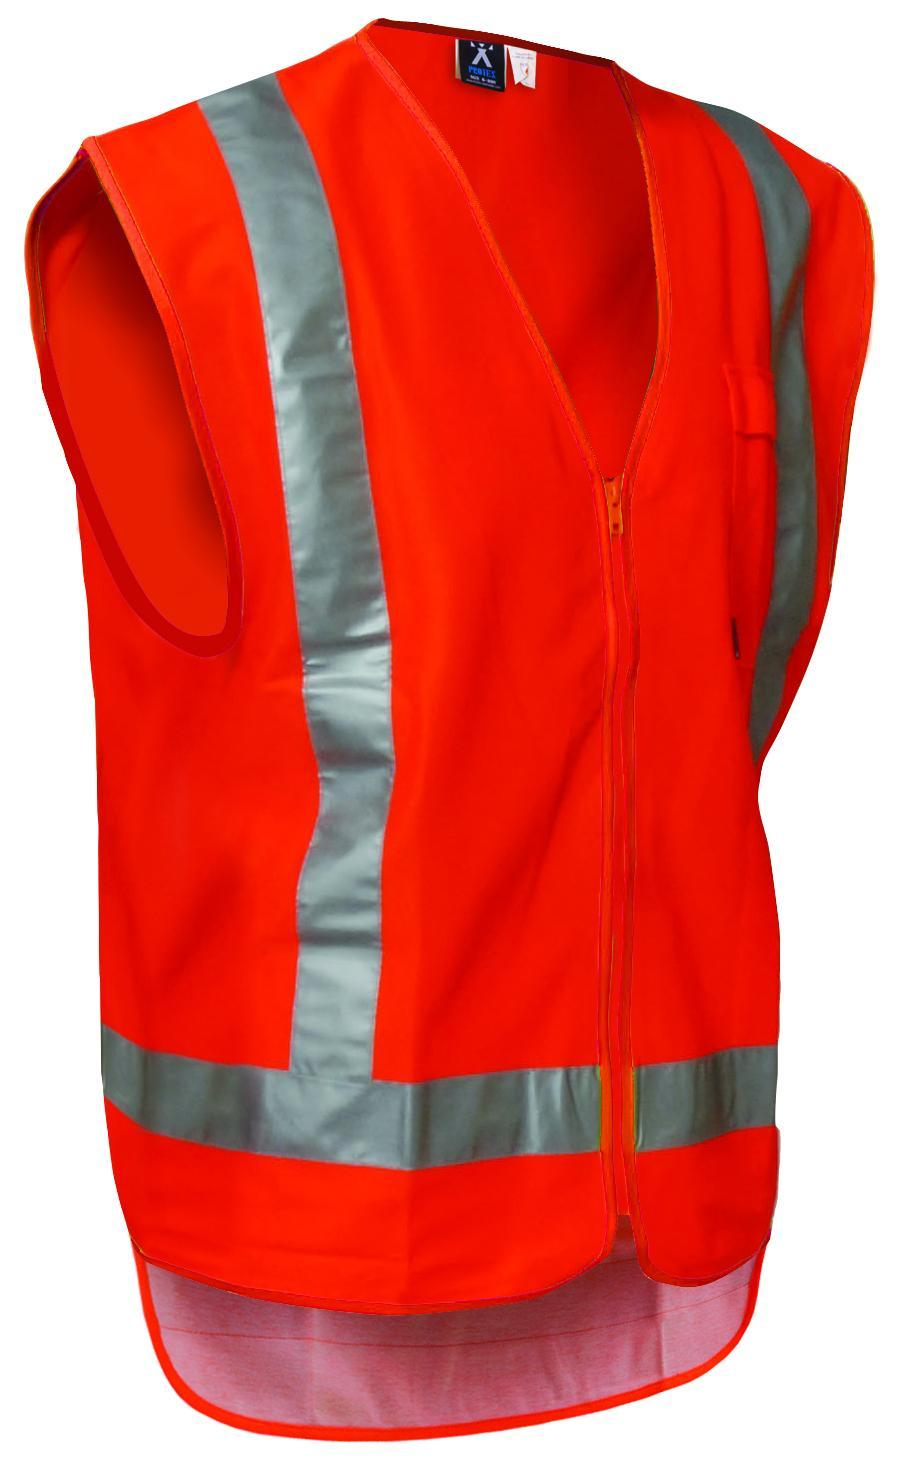 9fc47cfb2ff37 DN Hi Vis Safety Vest - TTMC - The Uniform Factory